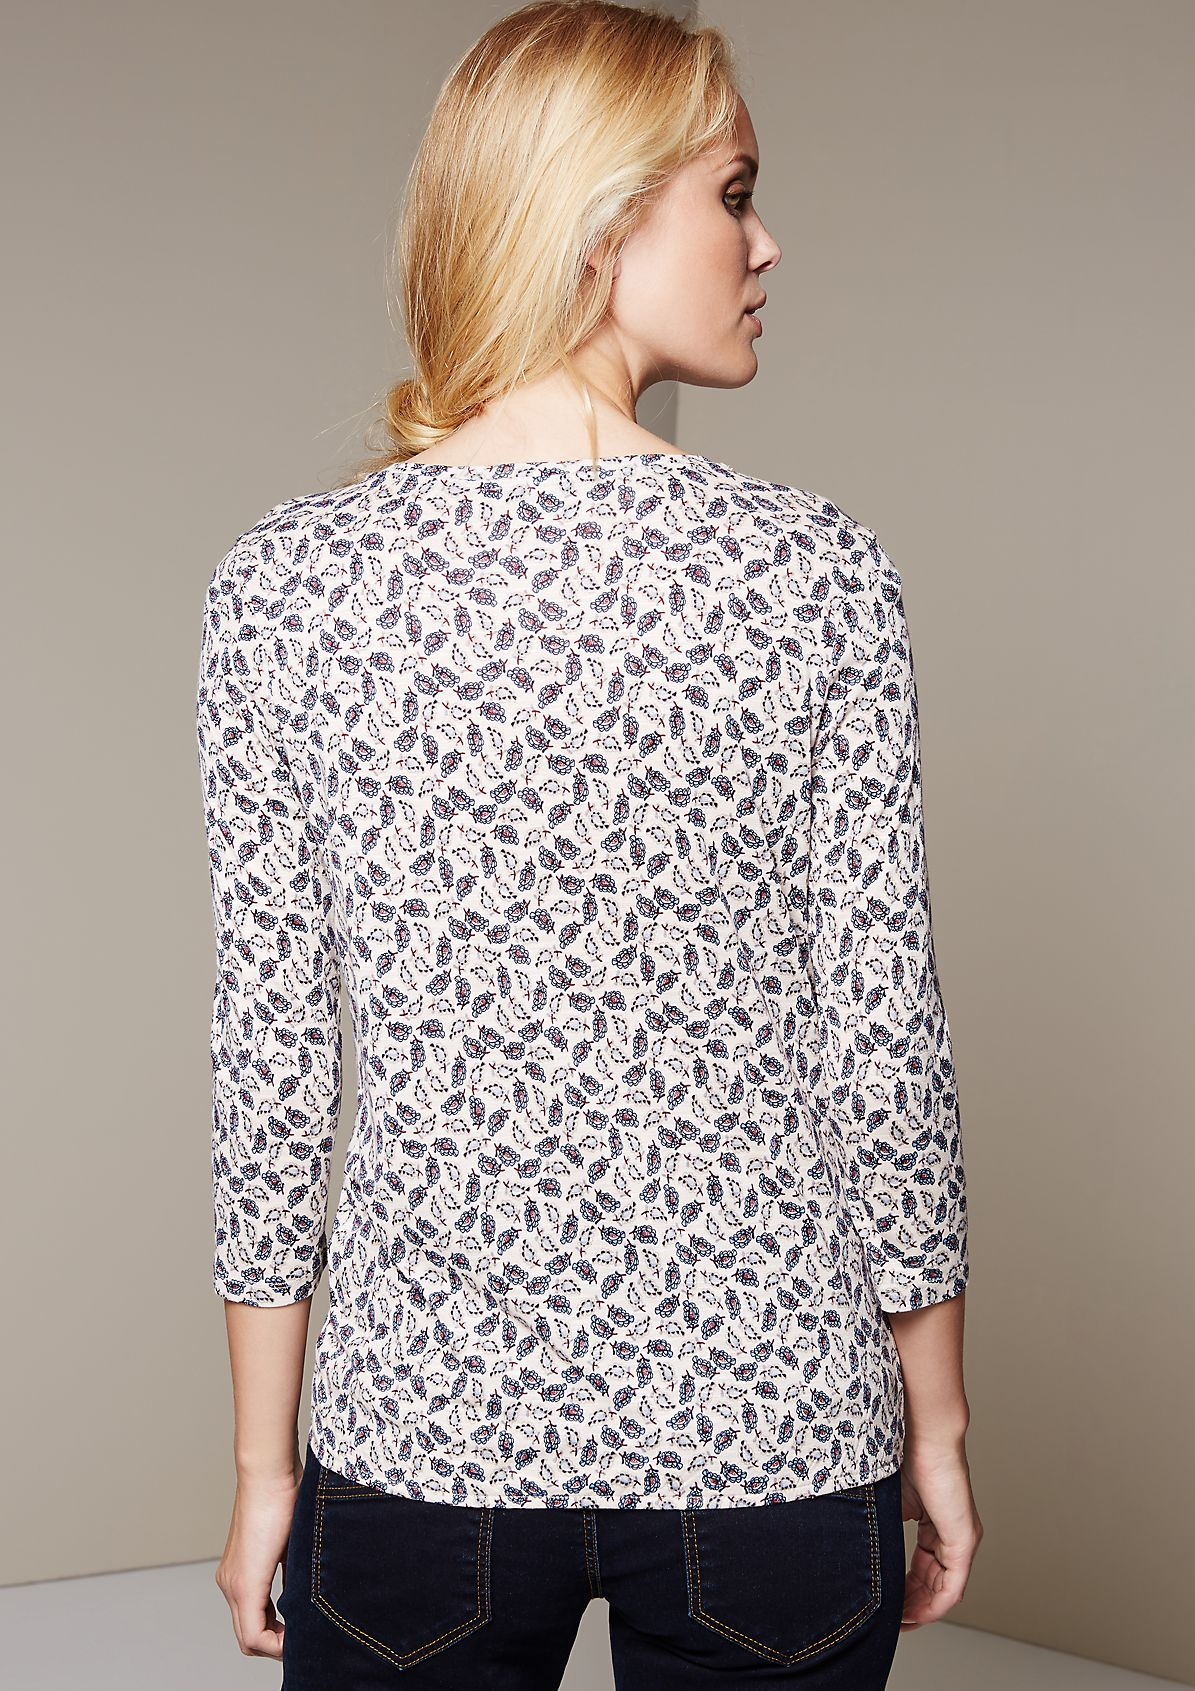 Casual top with 3/4-length sleeves and a decorative all-over print from s.Oliver